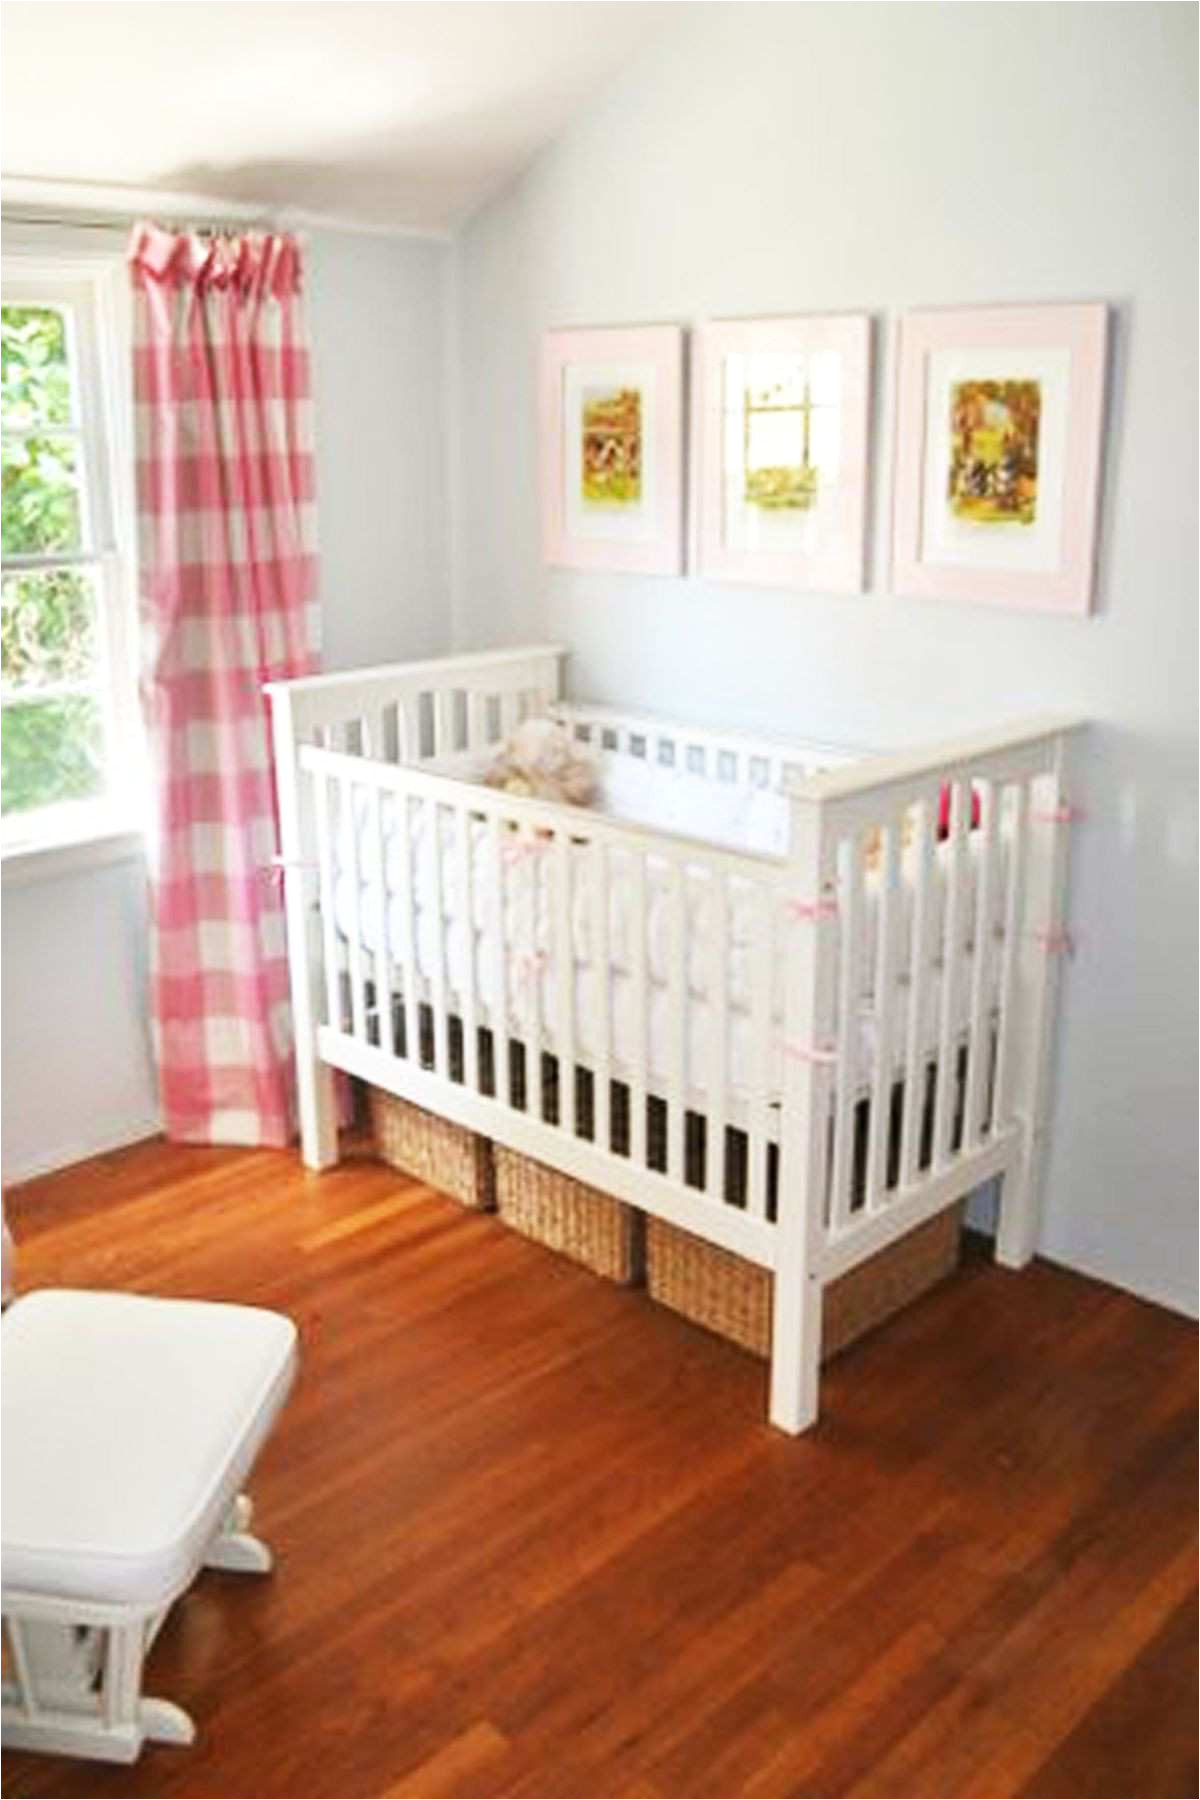 under crib storage though i not sure there is even room under our crib jpg 1200x1800